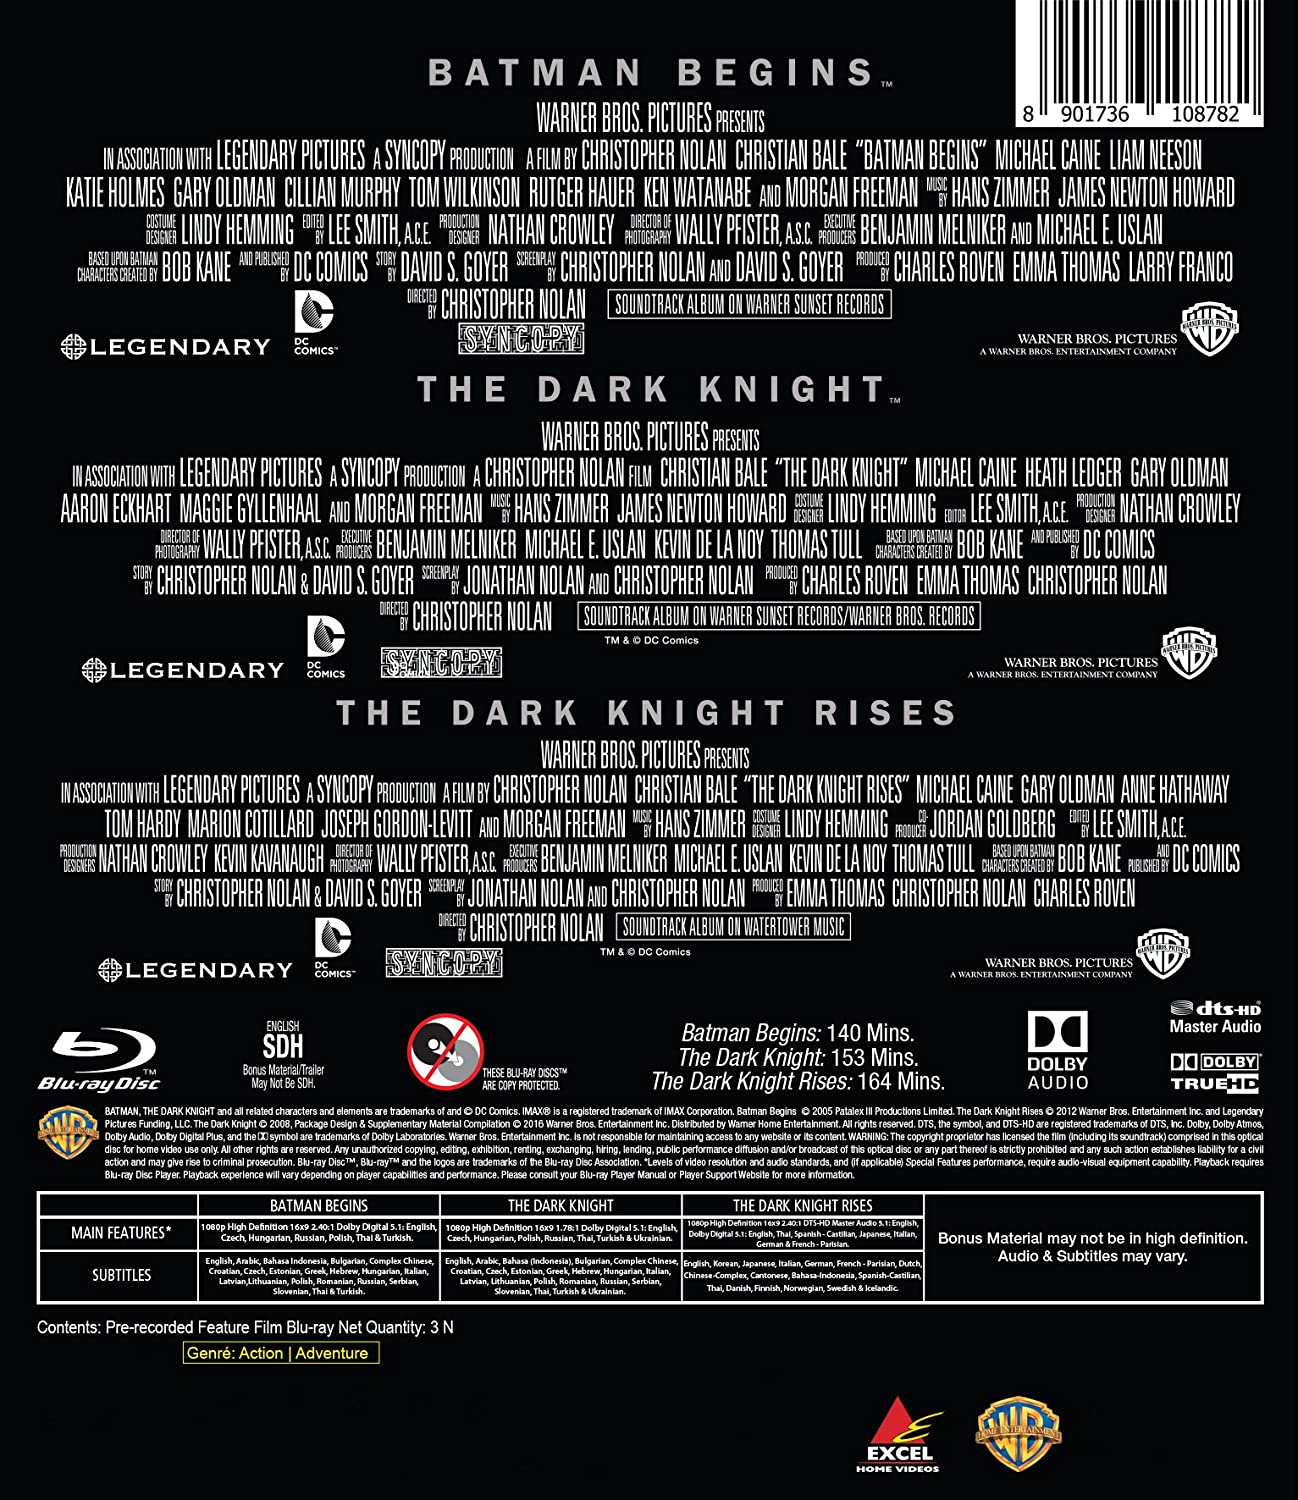 the dark knight rises 1080p worldfree4u